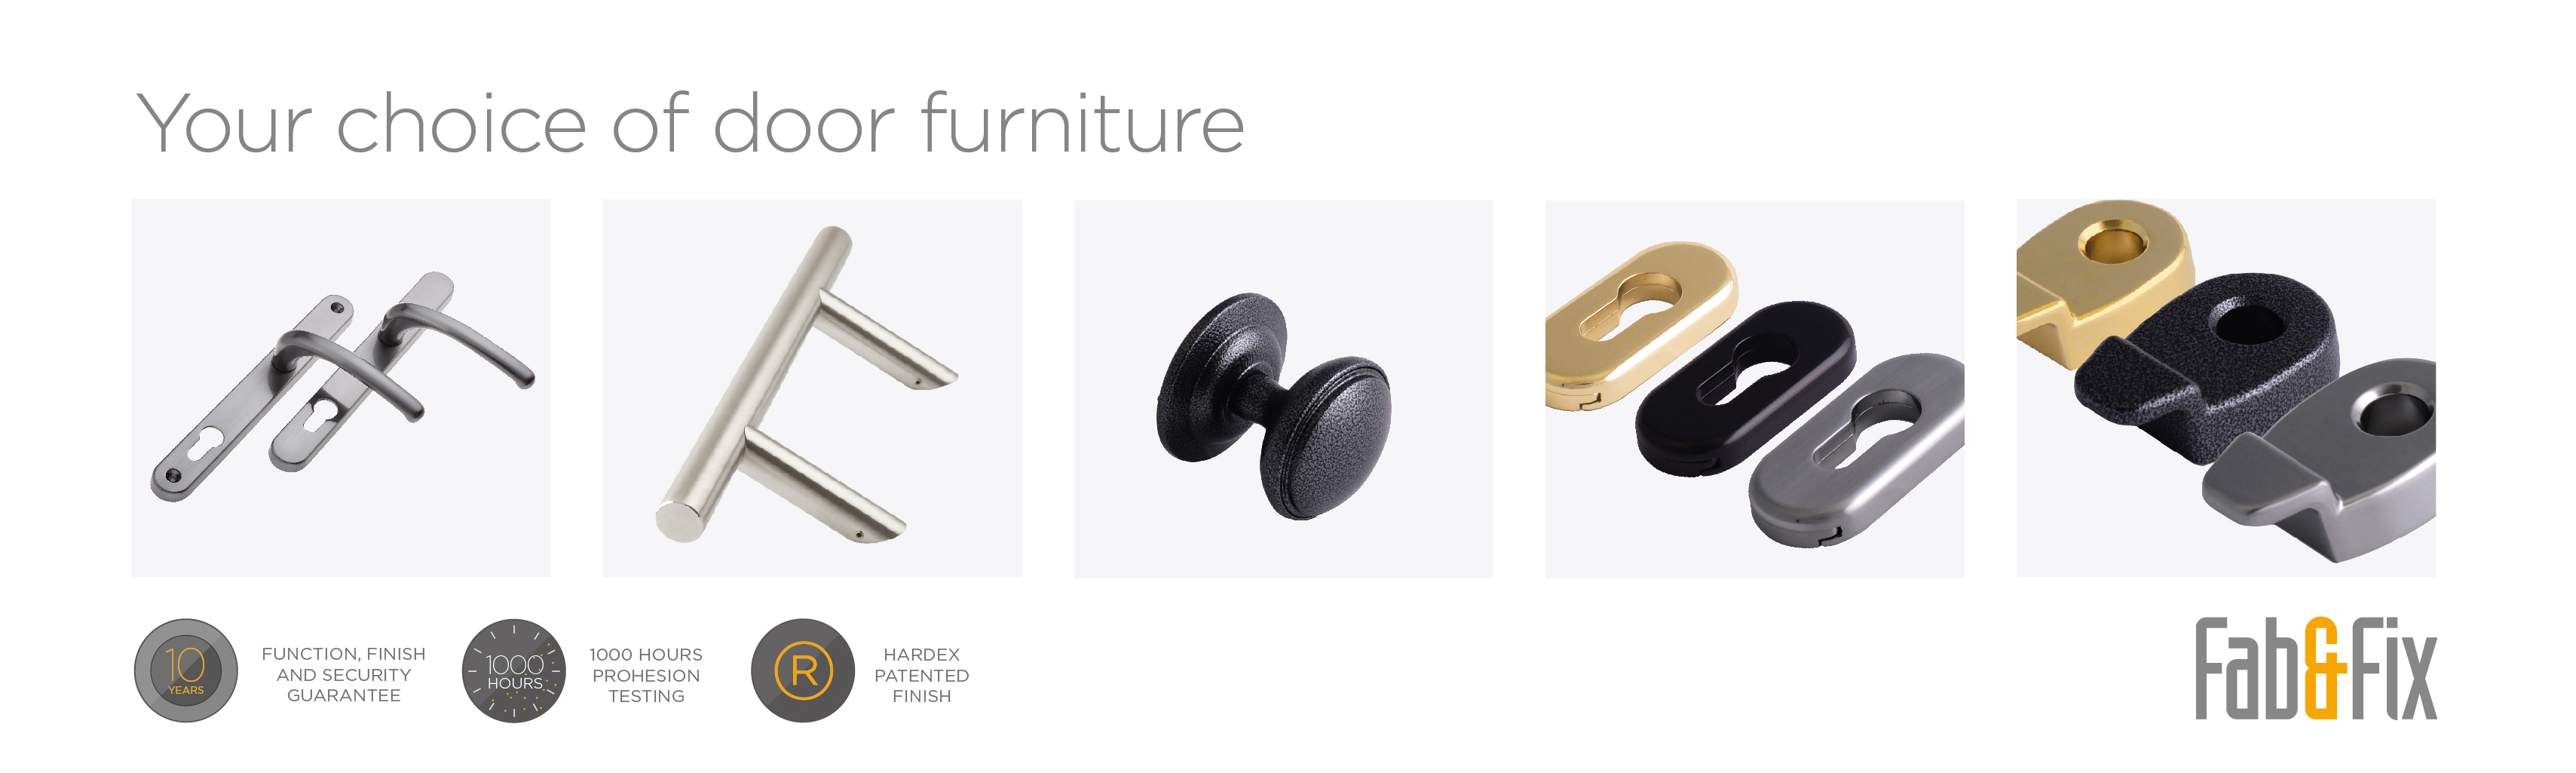 Fab&Fix your choice in door furniture